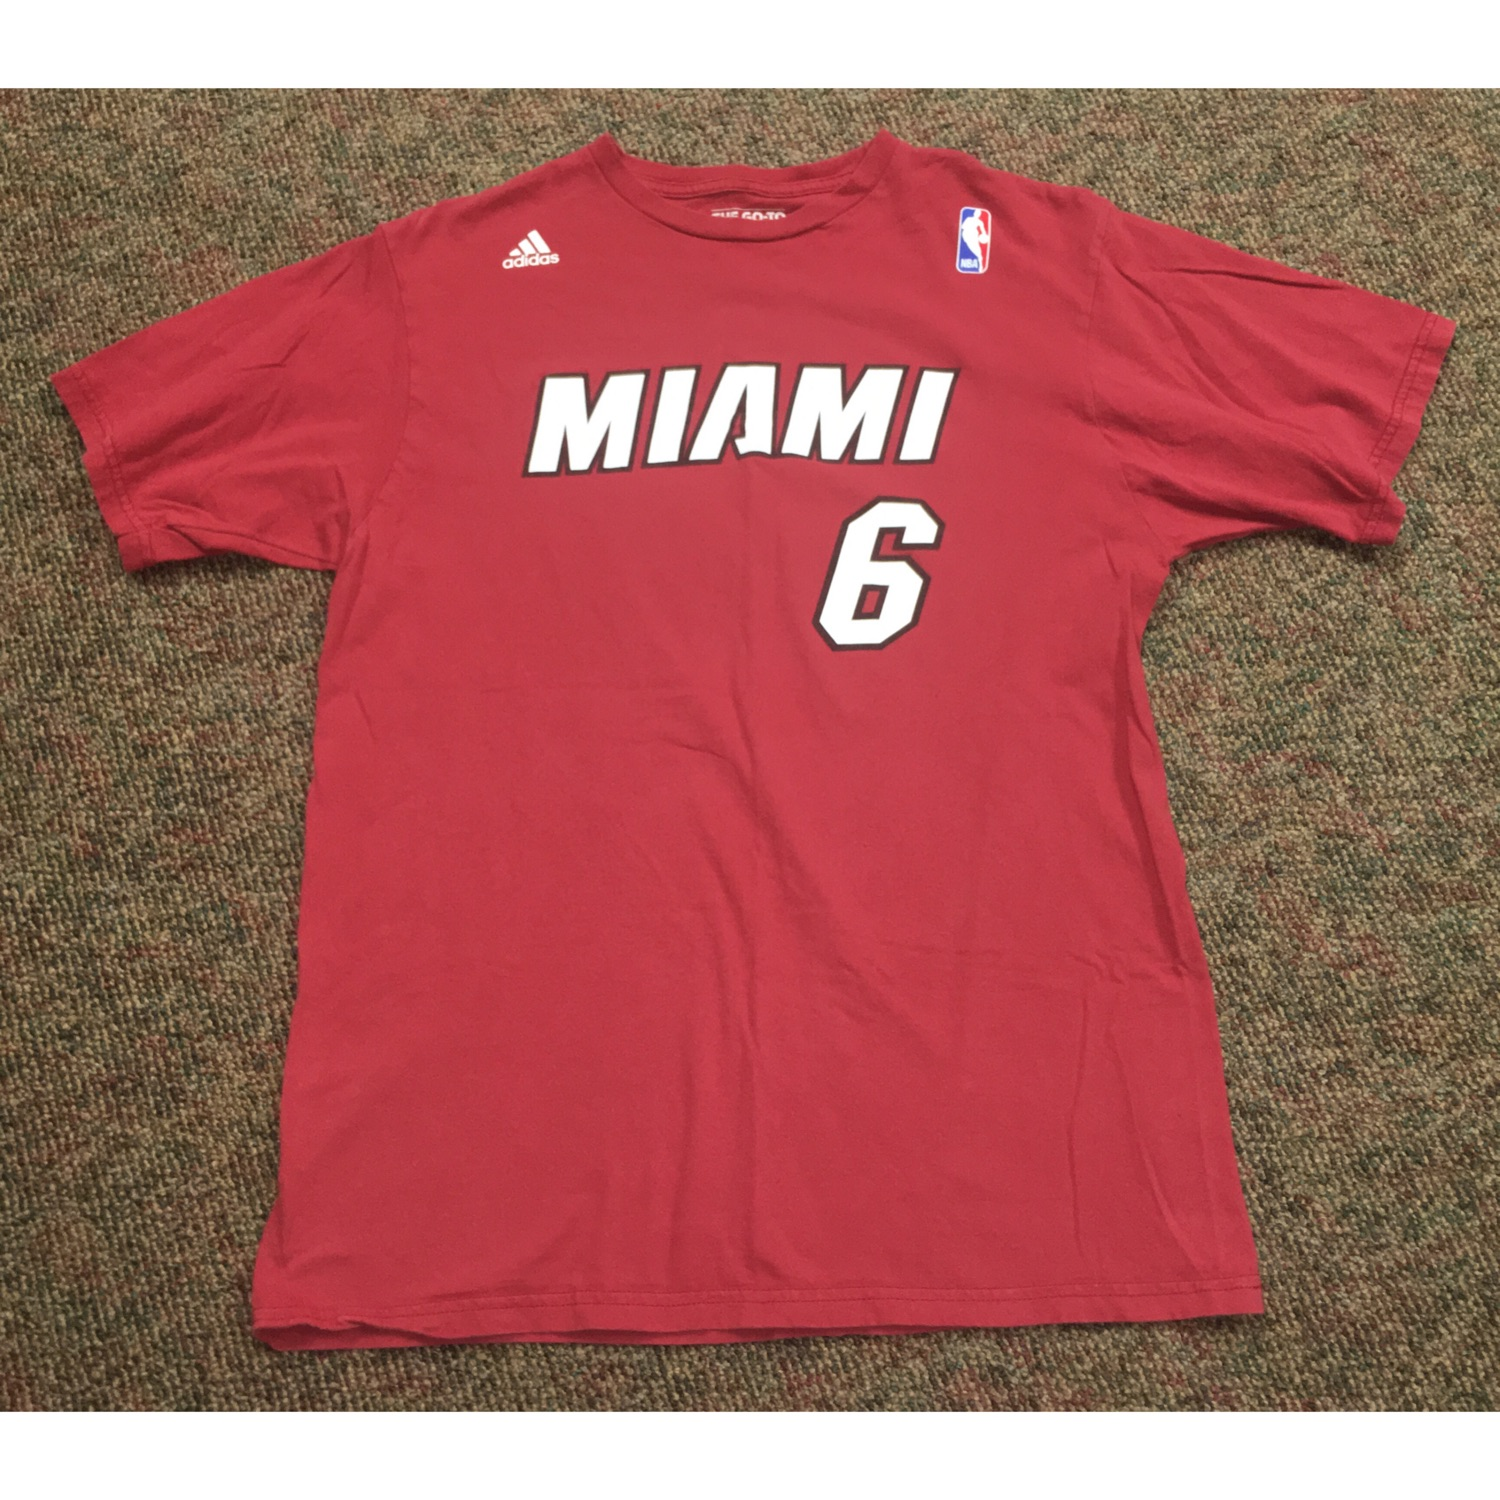 finest selection b706c 33fba Miami Heat #6 Lebron James Red Shirt